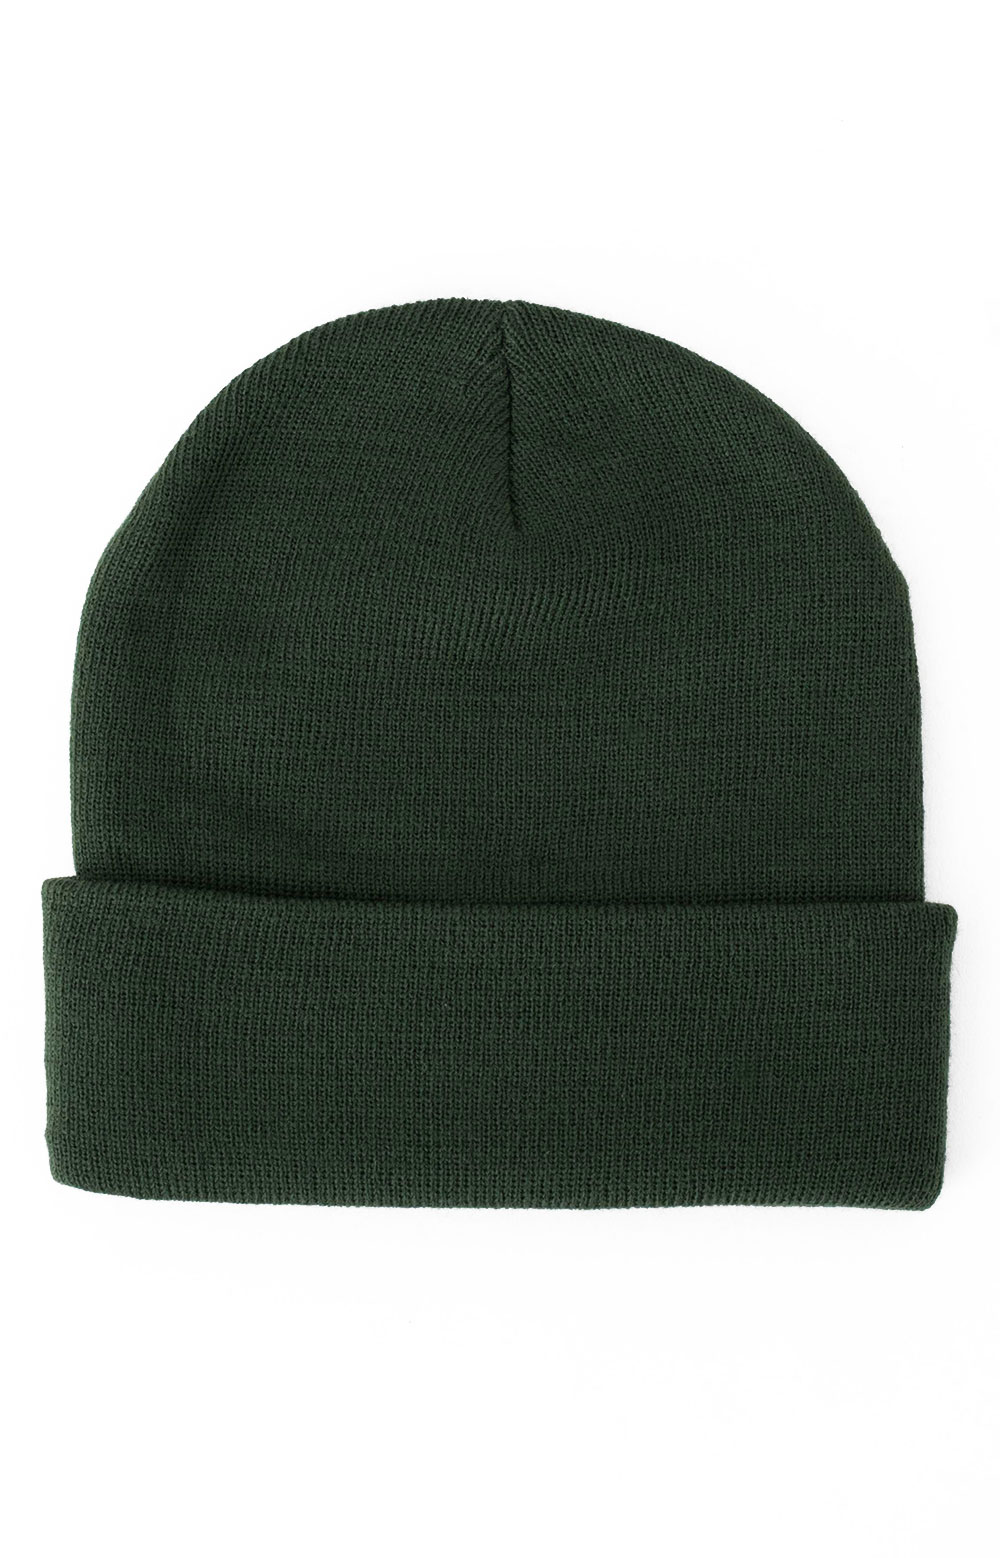 (5788) Rothco Deluxe Fine Knit Watch Cap - Olive Drab